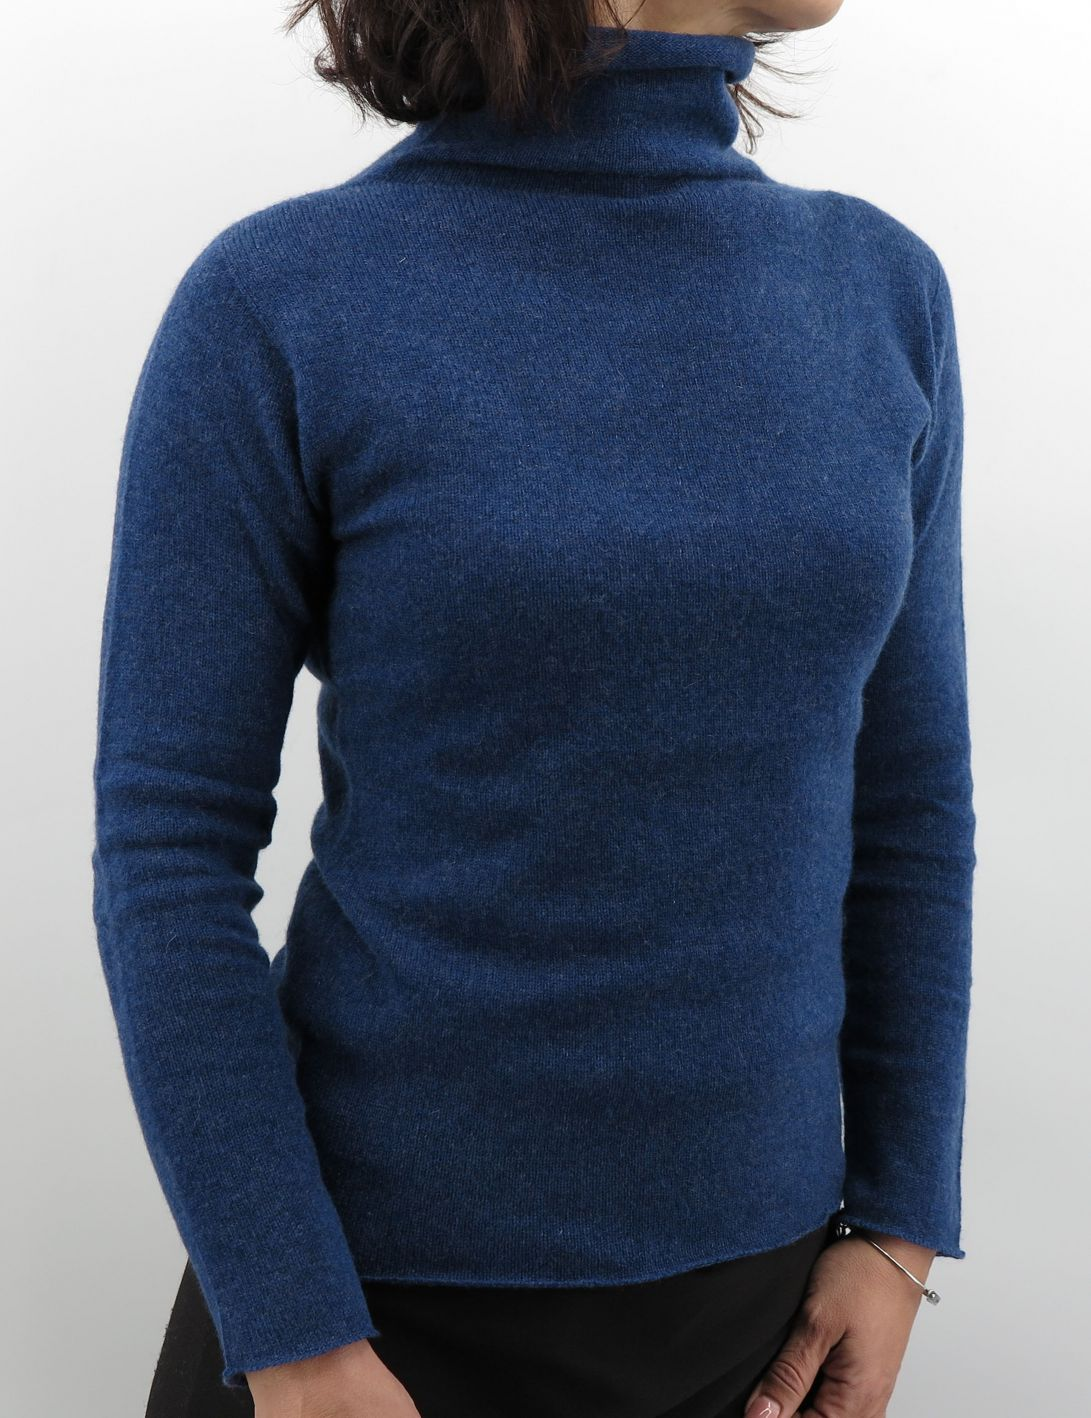 new product 2c92d c13d0 Dolcevita in Puro Cashmere